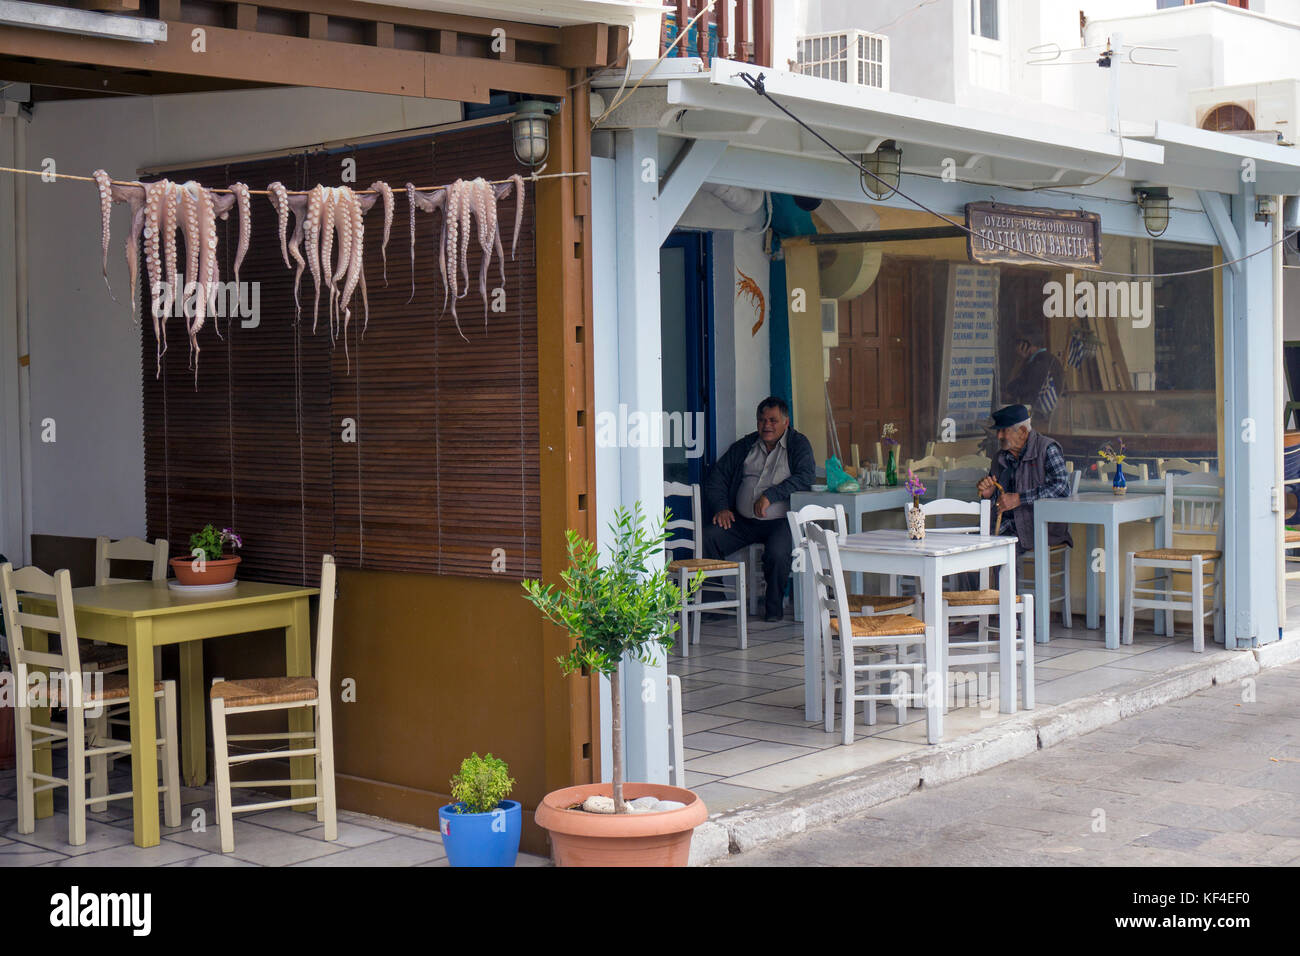 Octopus hanging for drying on a robe, tavern and fis restaurant at Naxos-town, Naxos island, Cyclades, Aegean, Greece - Stock Image